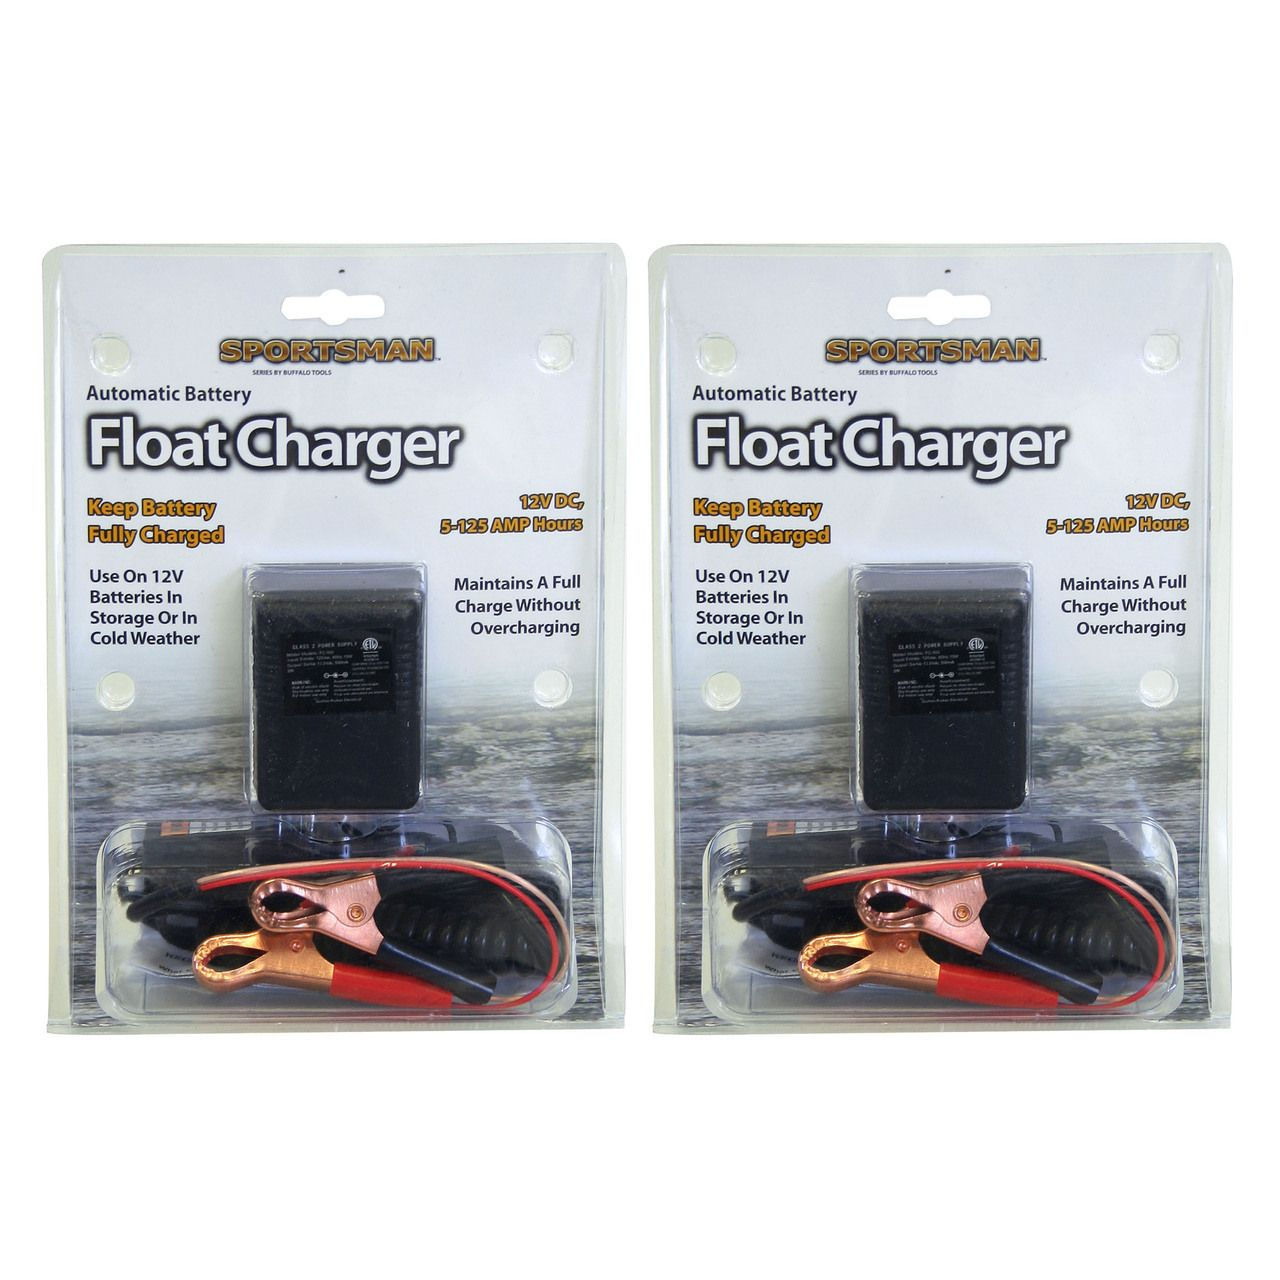 Sportsman Series Bfc8794 2 Piece Automatic Battery Float Charger Charger Car Battery Charger Solar Battery Charger